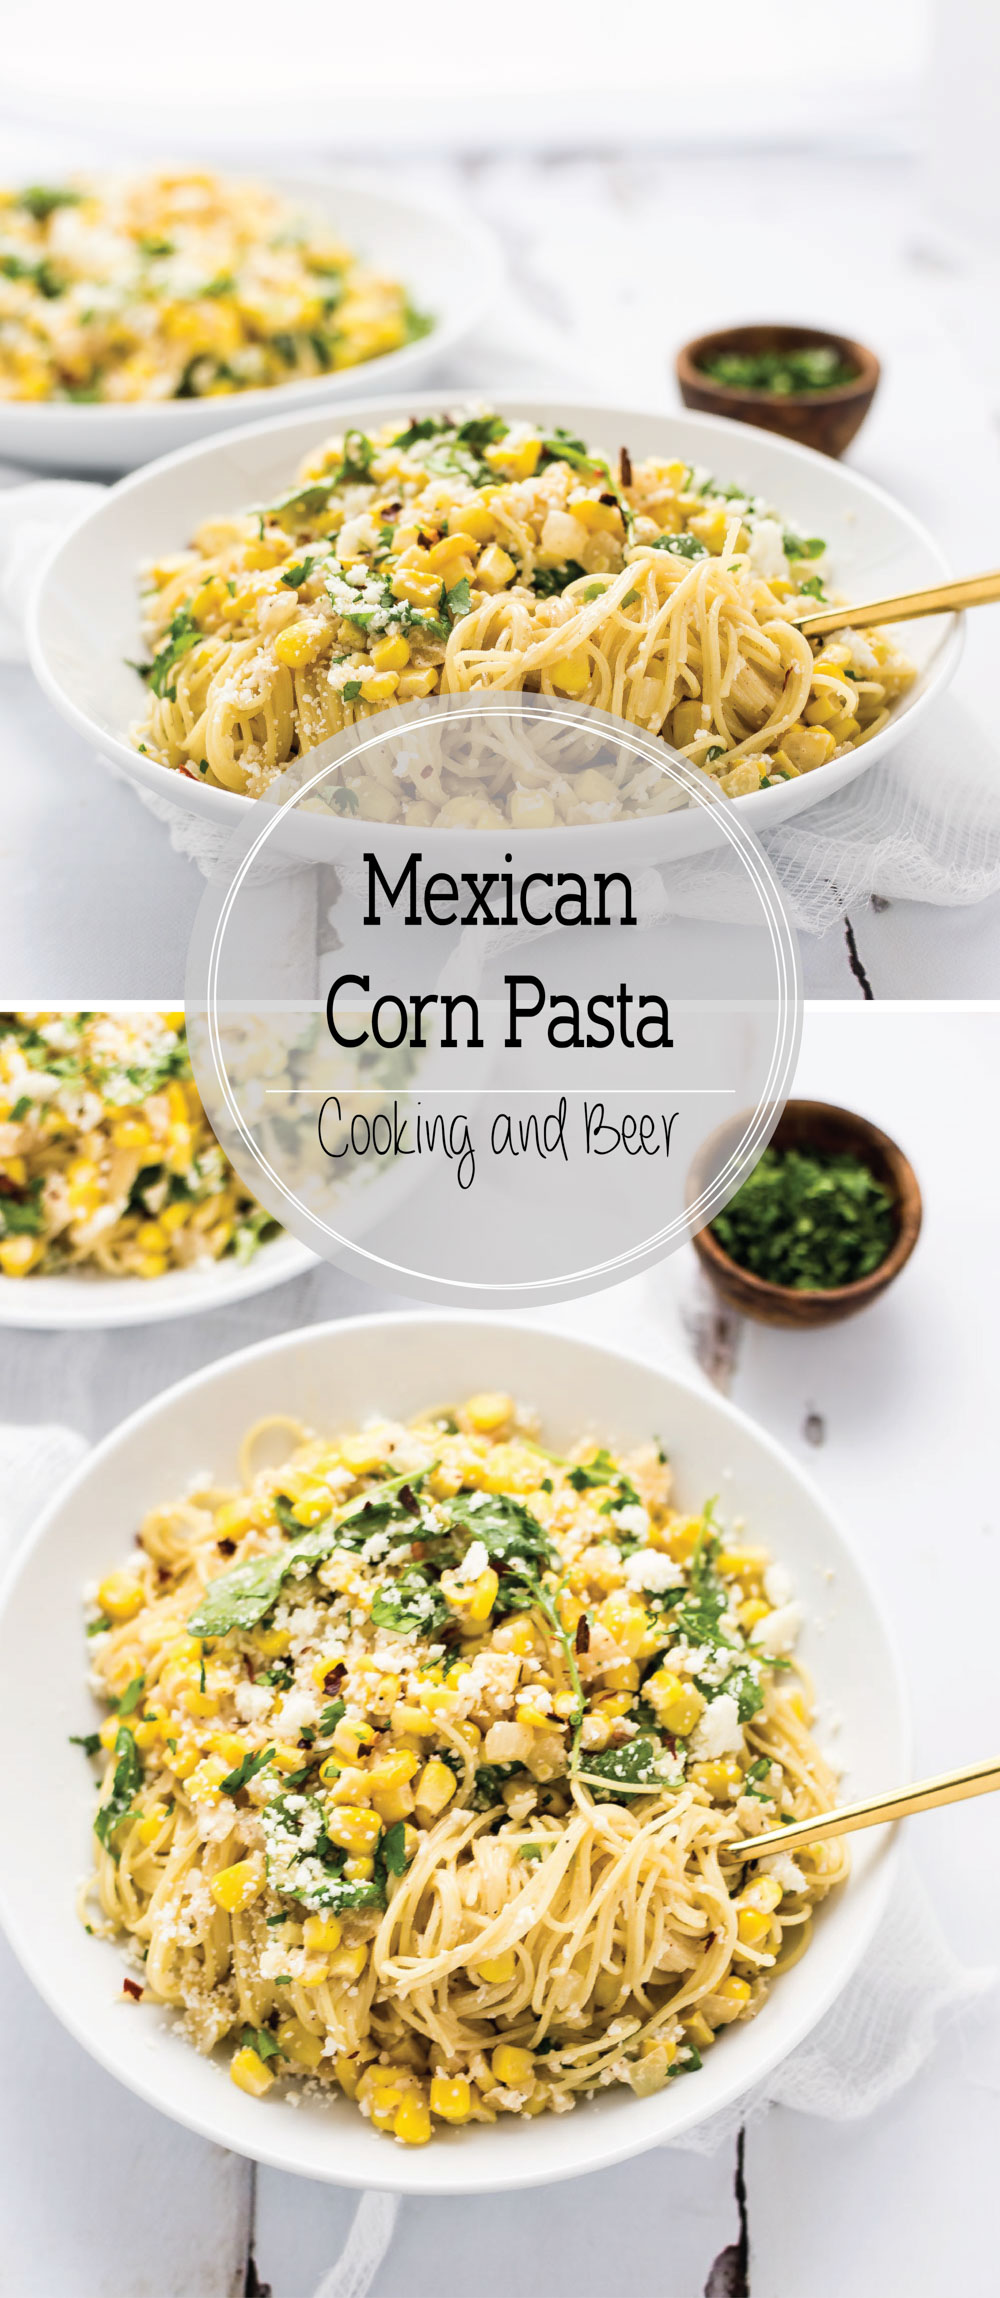 Mexican Corn Pasta is a super fresh and super delicious quick weeknight meal!